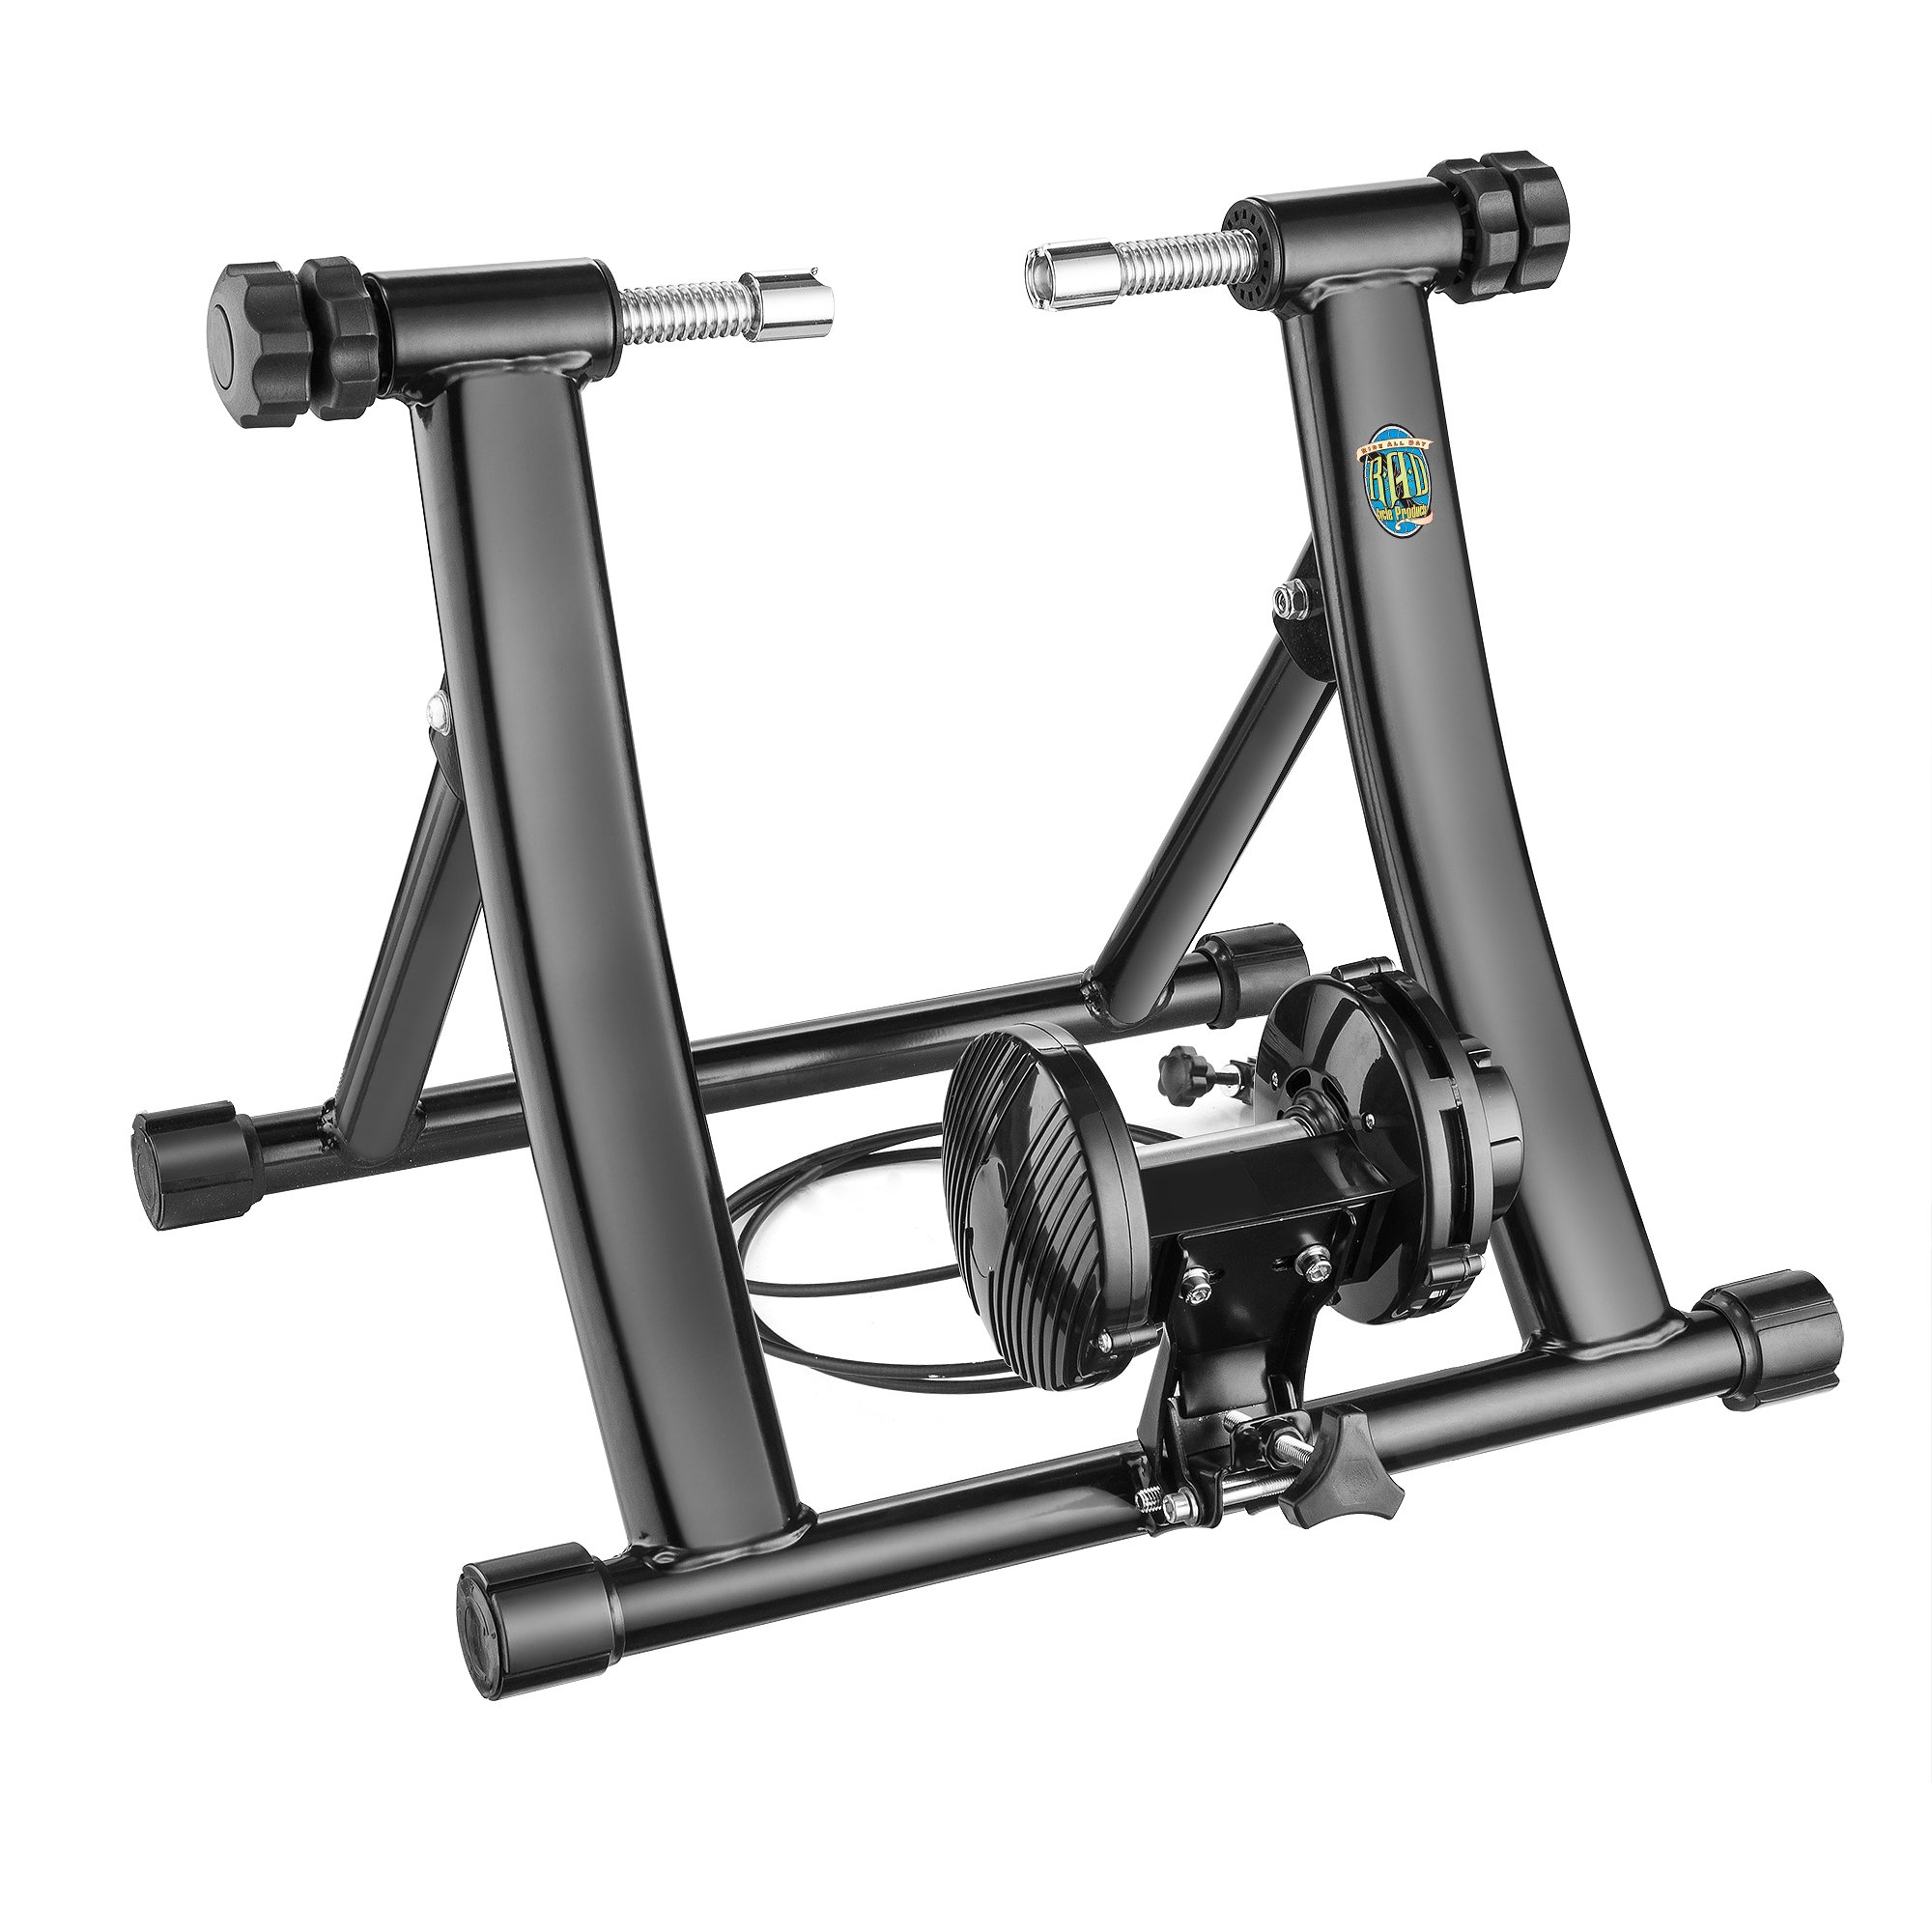 RAD Cycle Products RAD Mag Elite 9 Levels of with Smooth Magnetic Resistance Bicycle Trainer Allows You to Work Out with Your Bike